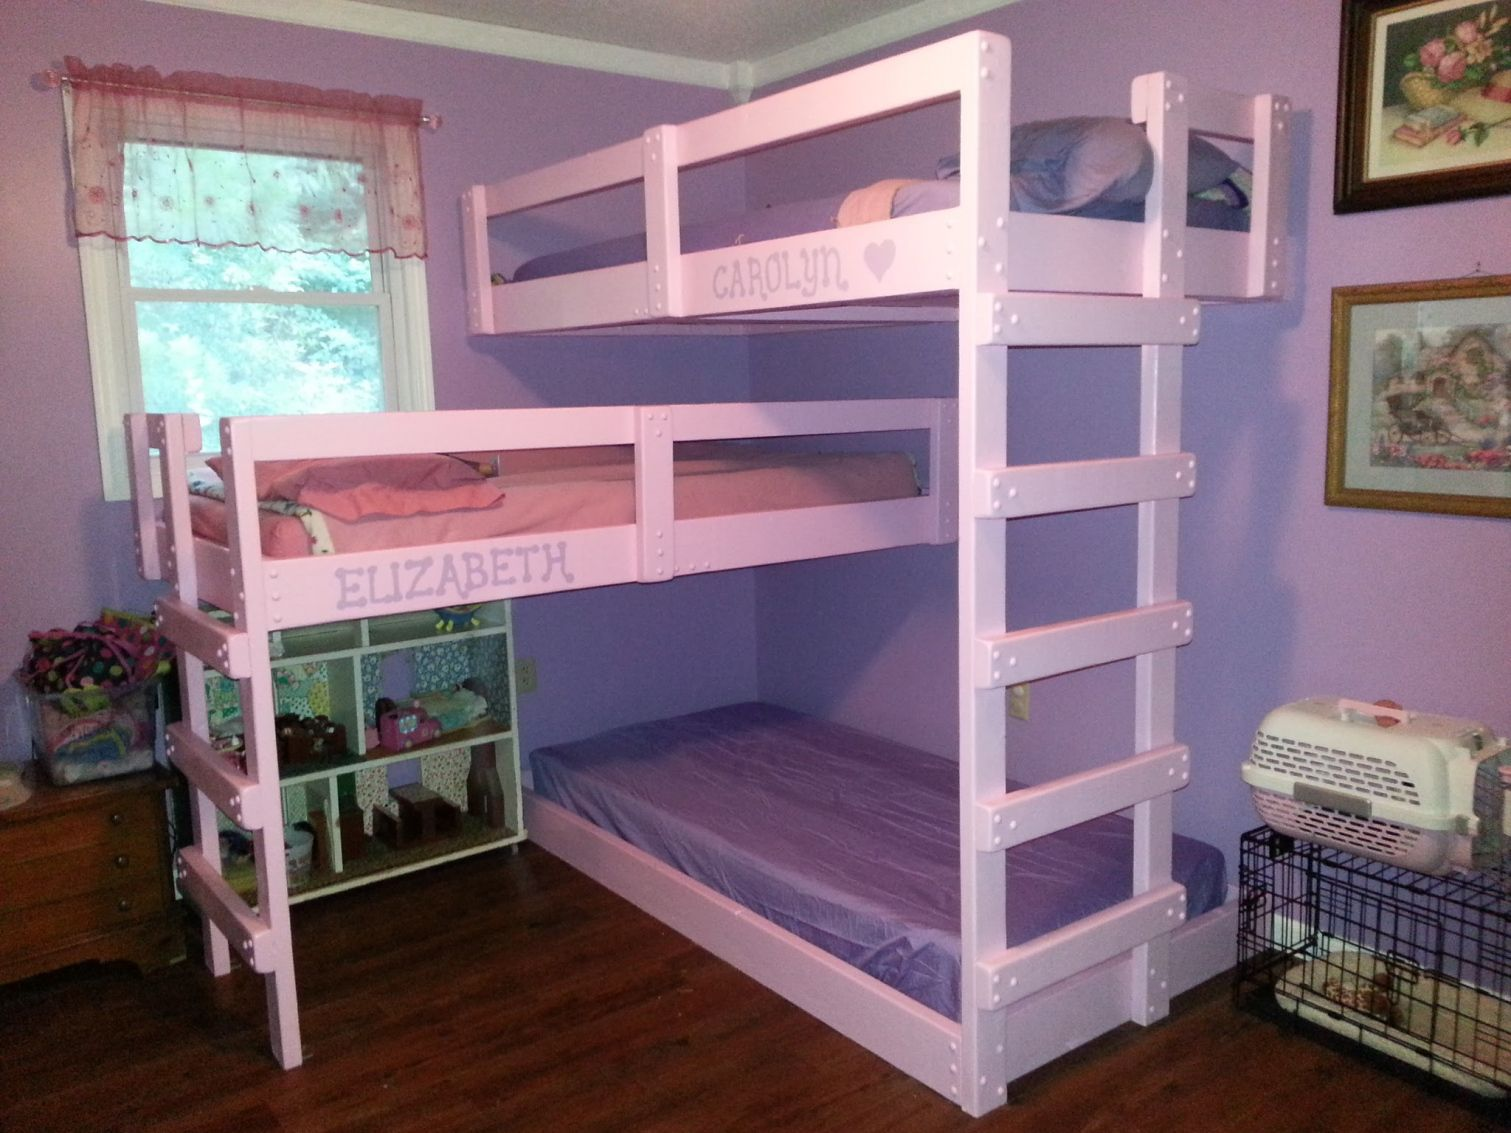 Schon 30 Bunk Beds For Small Rooms   Interior Bedroom Paint Colors Check More At  Http://billiepiperfan.com/bunk Beds For Small Rooms/